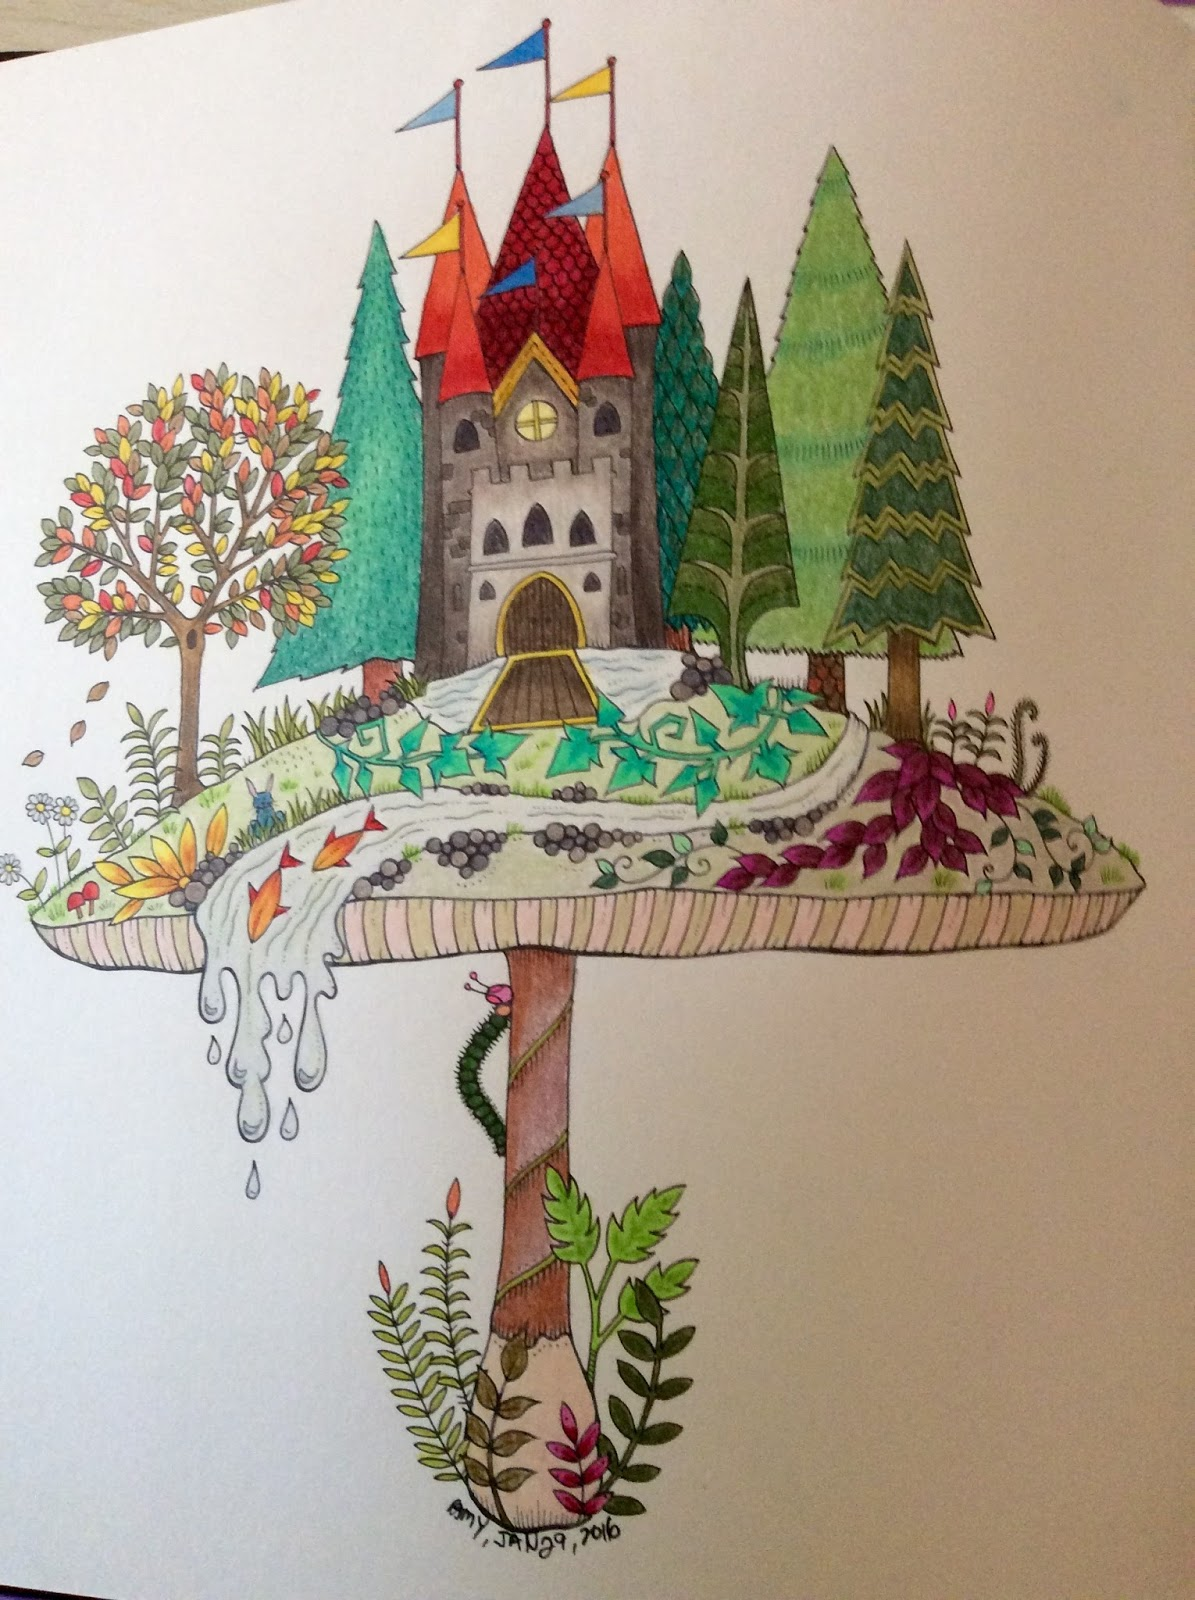 I Cant Say Enjoyed Doing Either Of These From Johanna Basfords Enchanted Garden Book There Are So Many Elements In Them And Each Is Tiny Limiting The